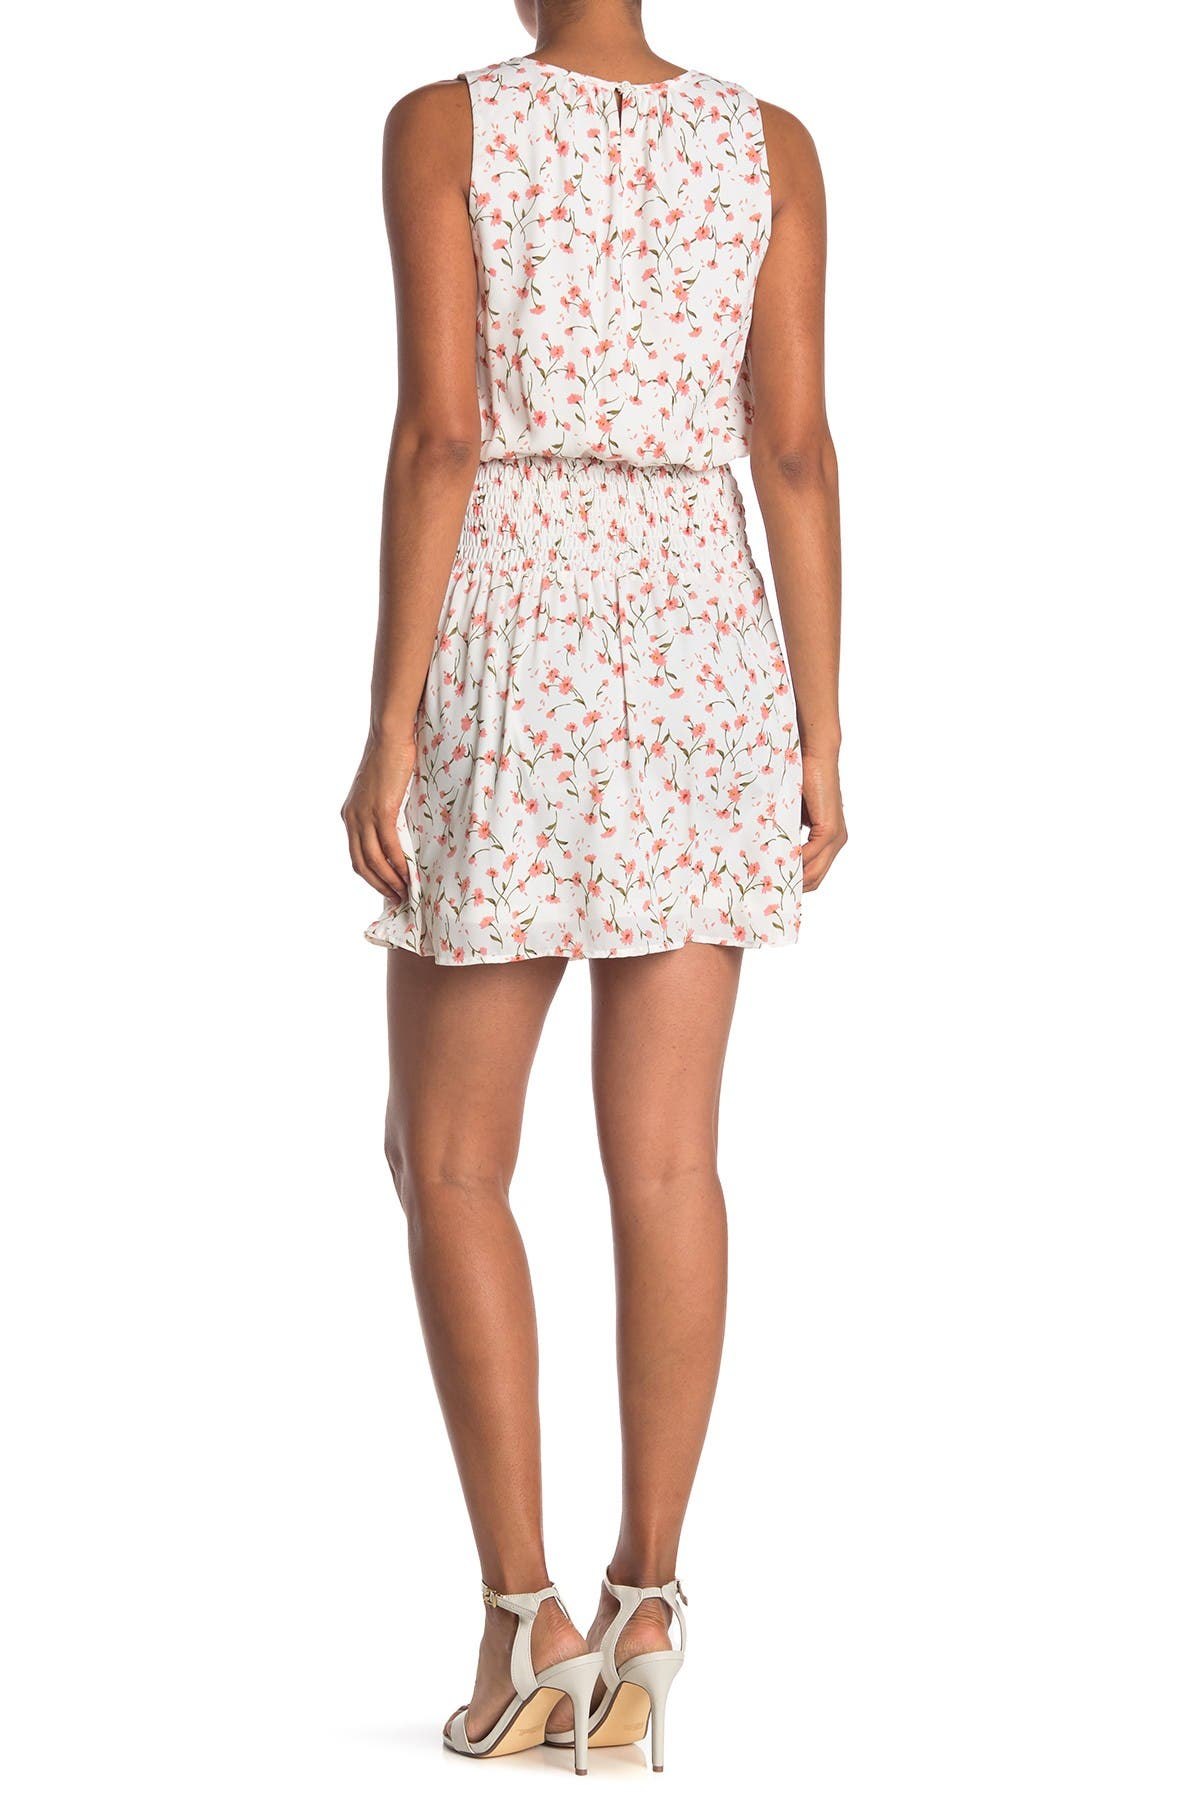 Image of Collective Concepts Floral Smocked Sleeveless Dress